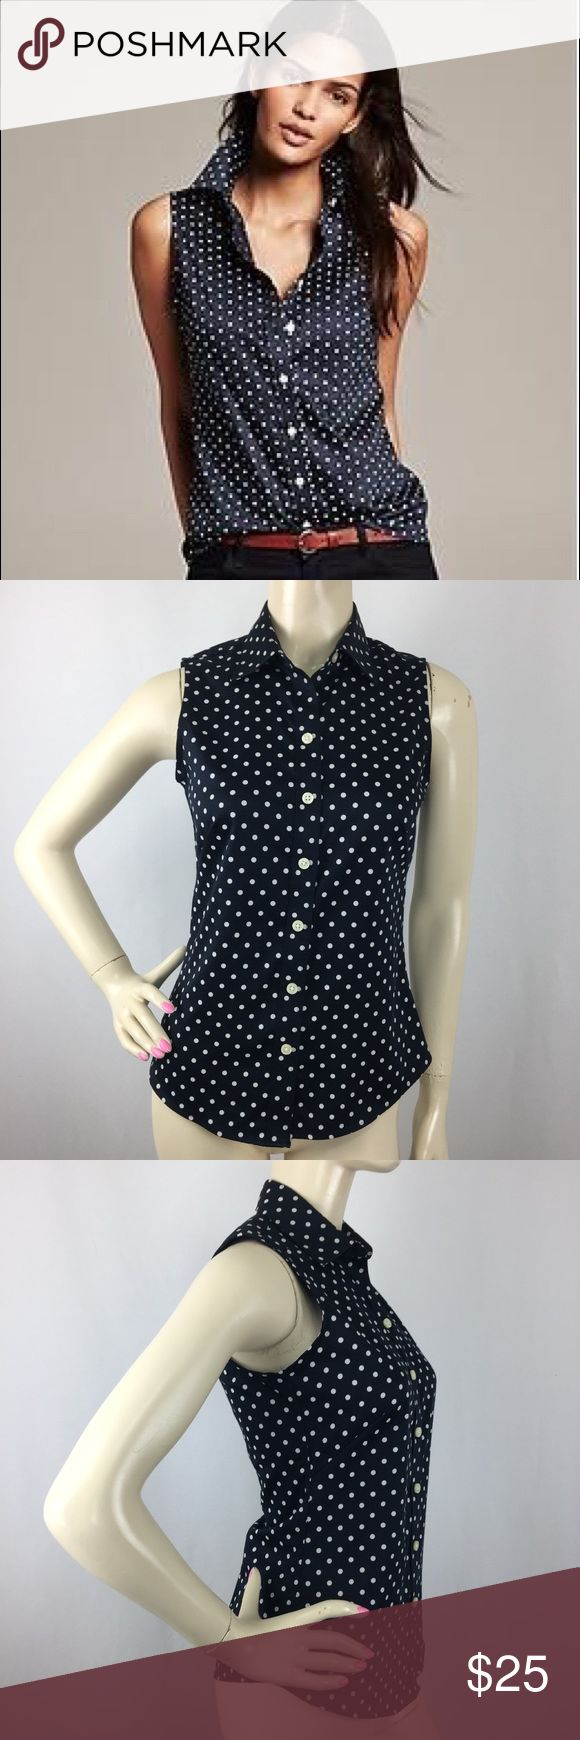 "Banana Republic Navy Polka Dot Non iron Shirt P 00 Gently used,no flaws. MATERIAL: 97%Cotton 3%Lycra-Spandex MEASUREMENTS: (Please note that the measurements are approximate) ALL MEASUREMENTS ARE TAKEN WITH GARMENT LYING FLAT: BUST: 16"" WAIST: 14.5"" LENGHT: 24"" Banana Republic Tops Button Down Shirts"